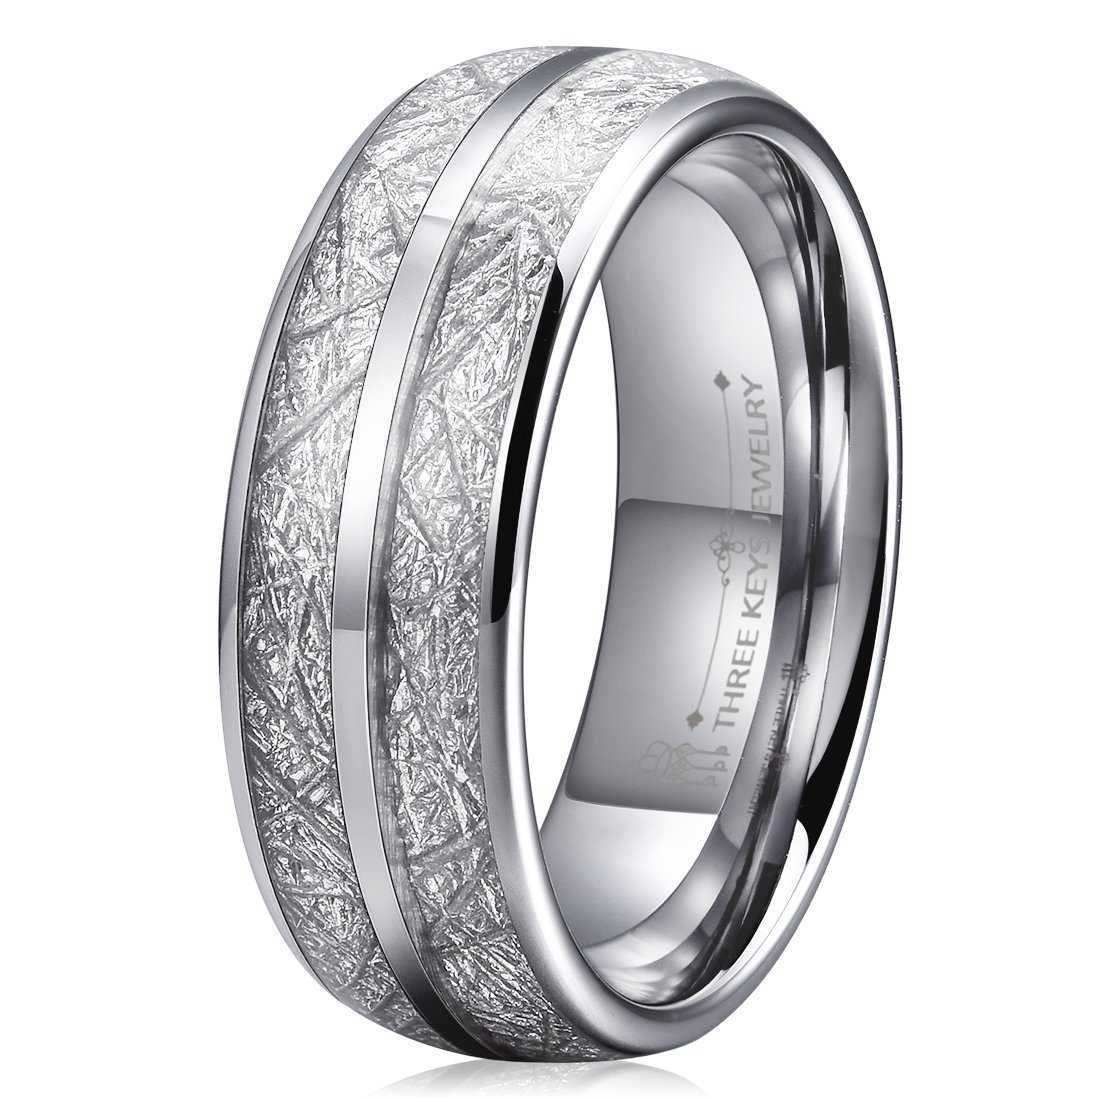 Three Keys 8mm Tungsten Wedding Ring for Men Domed Imitated Meteorite Inlay Mens Meteorite Wedding Band Engagement Ring Promise Ring Size 8.5